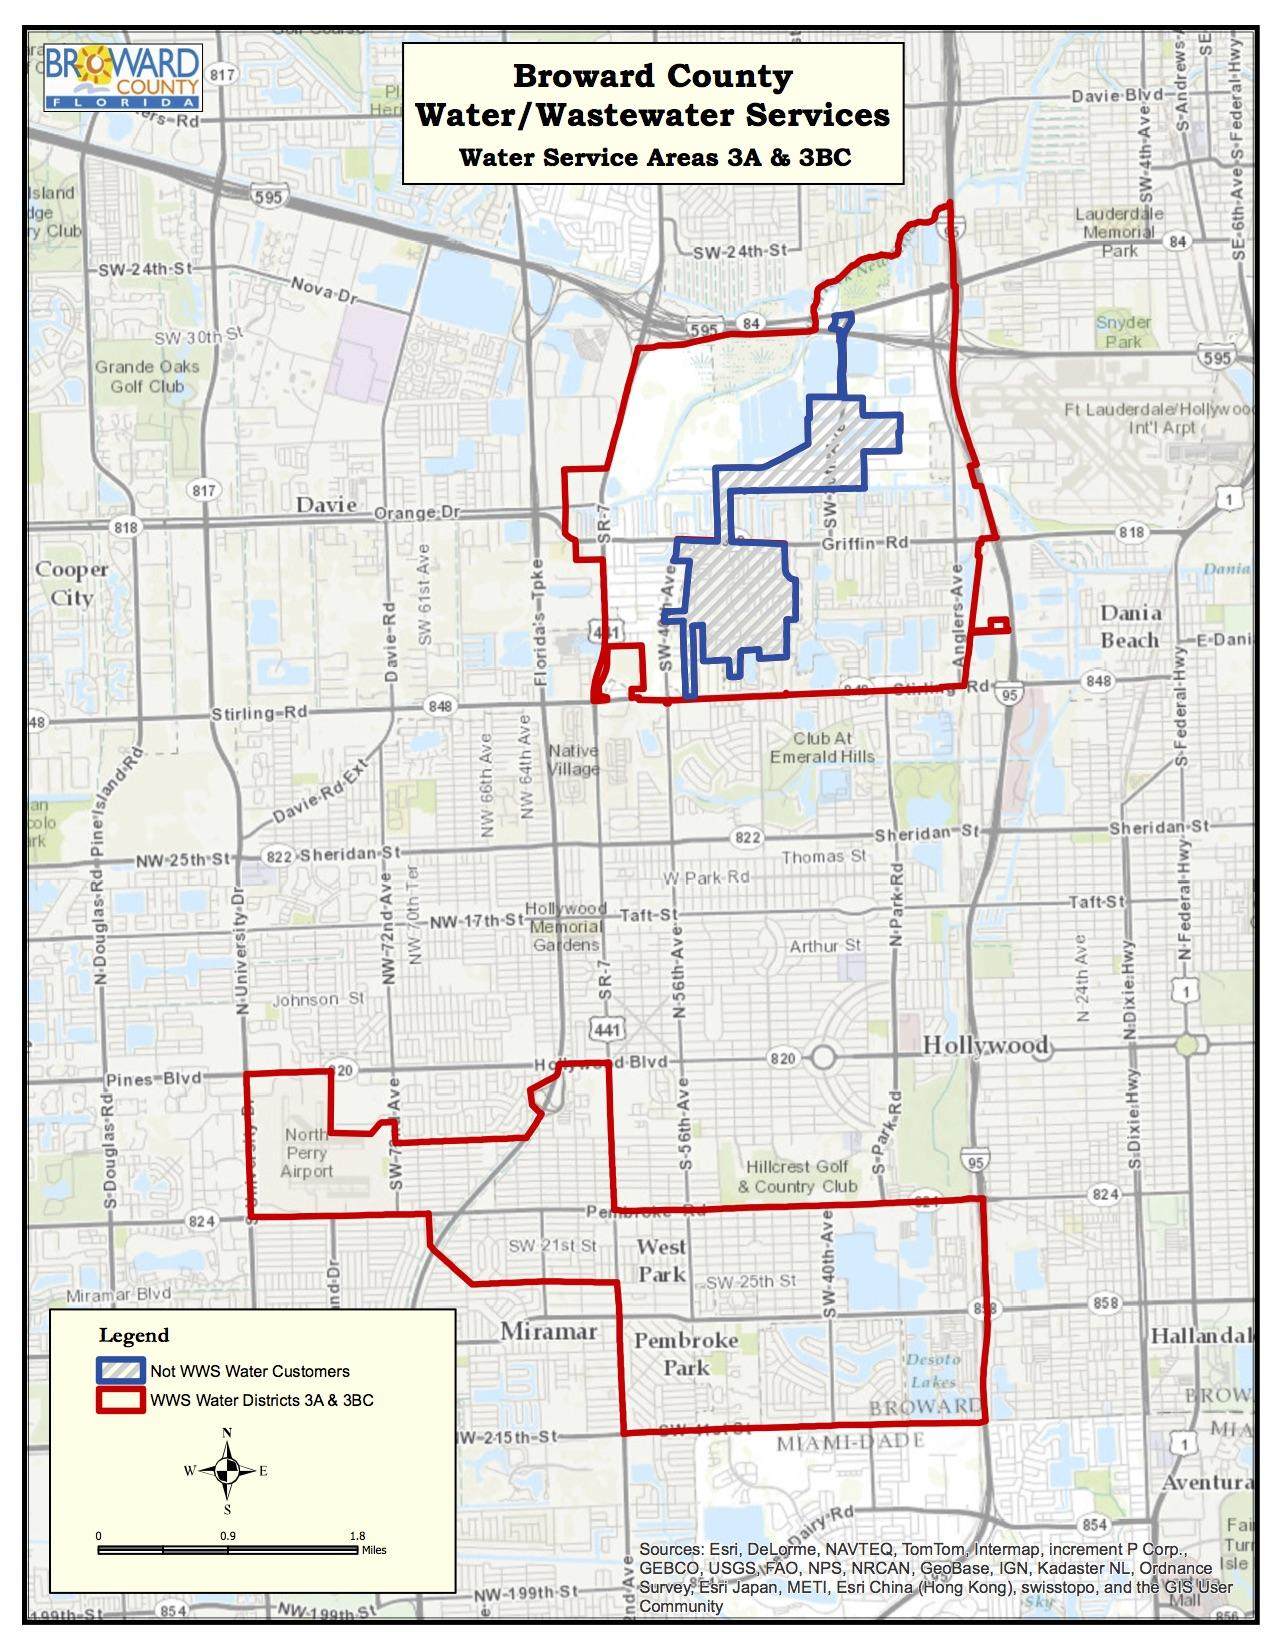 Boil Water Advisories Issued In Broward, Palm Beach And Monroe ... on st. johns county map, miami-dade county map, nova southeastern university, fort lauderdale map, orange county, hillsborough county, pinellas county, collier county, sarasota county map, west palm beach map, palm beach, delray beach map, west volusia county map, polk county, fort lauderdale, miami-dade county, florida, ann arbor county map, st. augustine, highlands county road map, pompano beach, volusia county, palm beach zip code map, pasco county map, key west county map, florida map, brevard county, west palm beach, boca raton map, palm beach county, pompano beach map, city of coral springs map, brevard county map, boca raton, palm beach county map, monroe county, duval county, deerfield beach, miramar map, allapattah map,